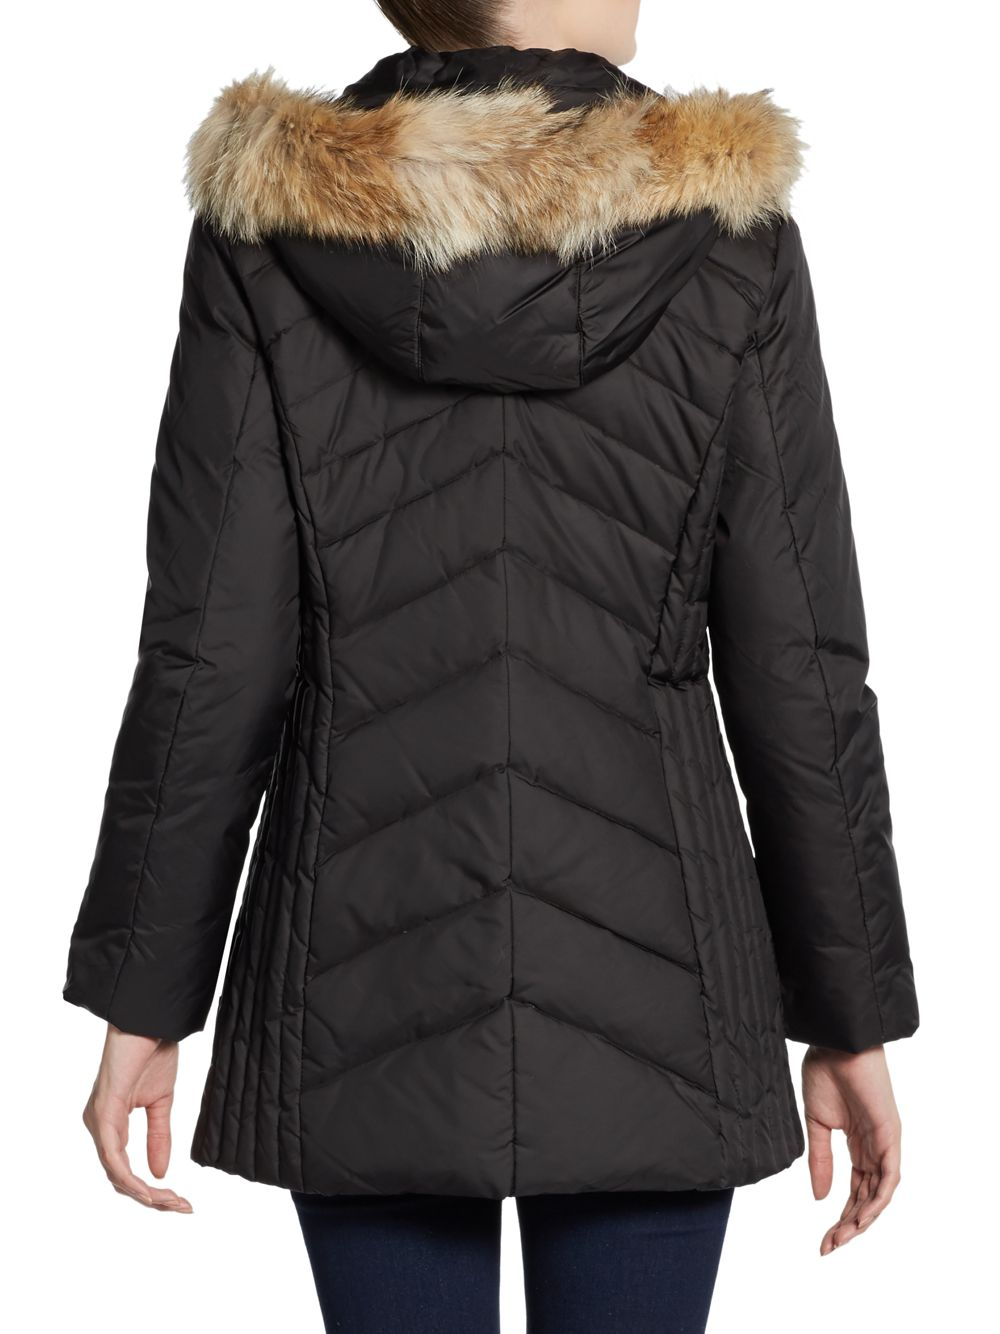 Marc New York Madison Furtrimmed Hooded Down Puffer Jacket